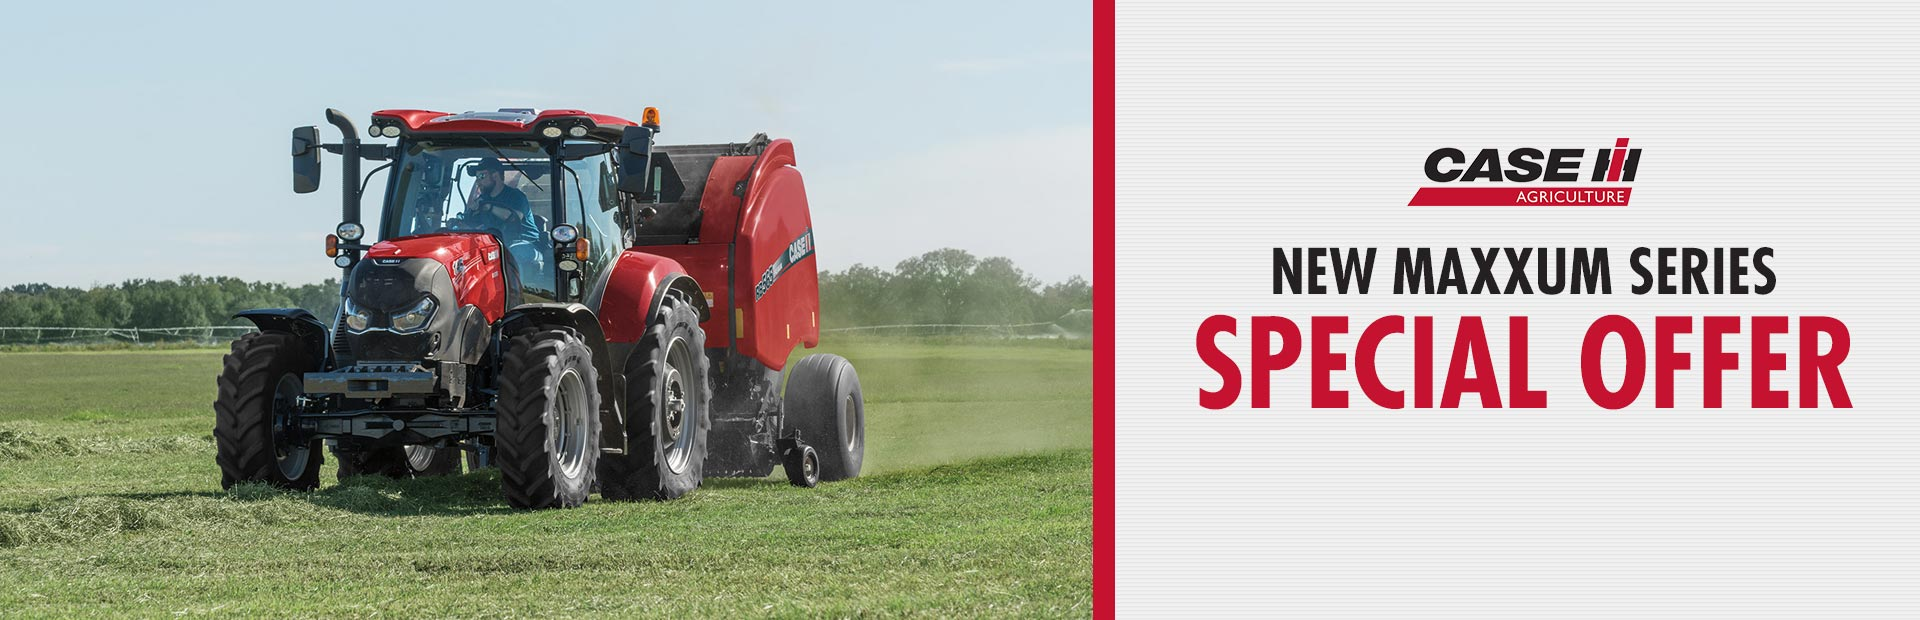 Case IH: New Maxxum Series Special Offer